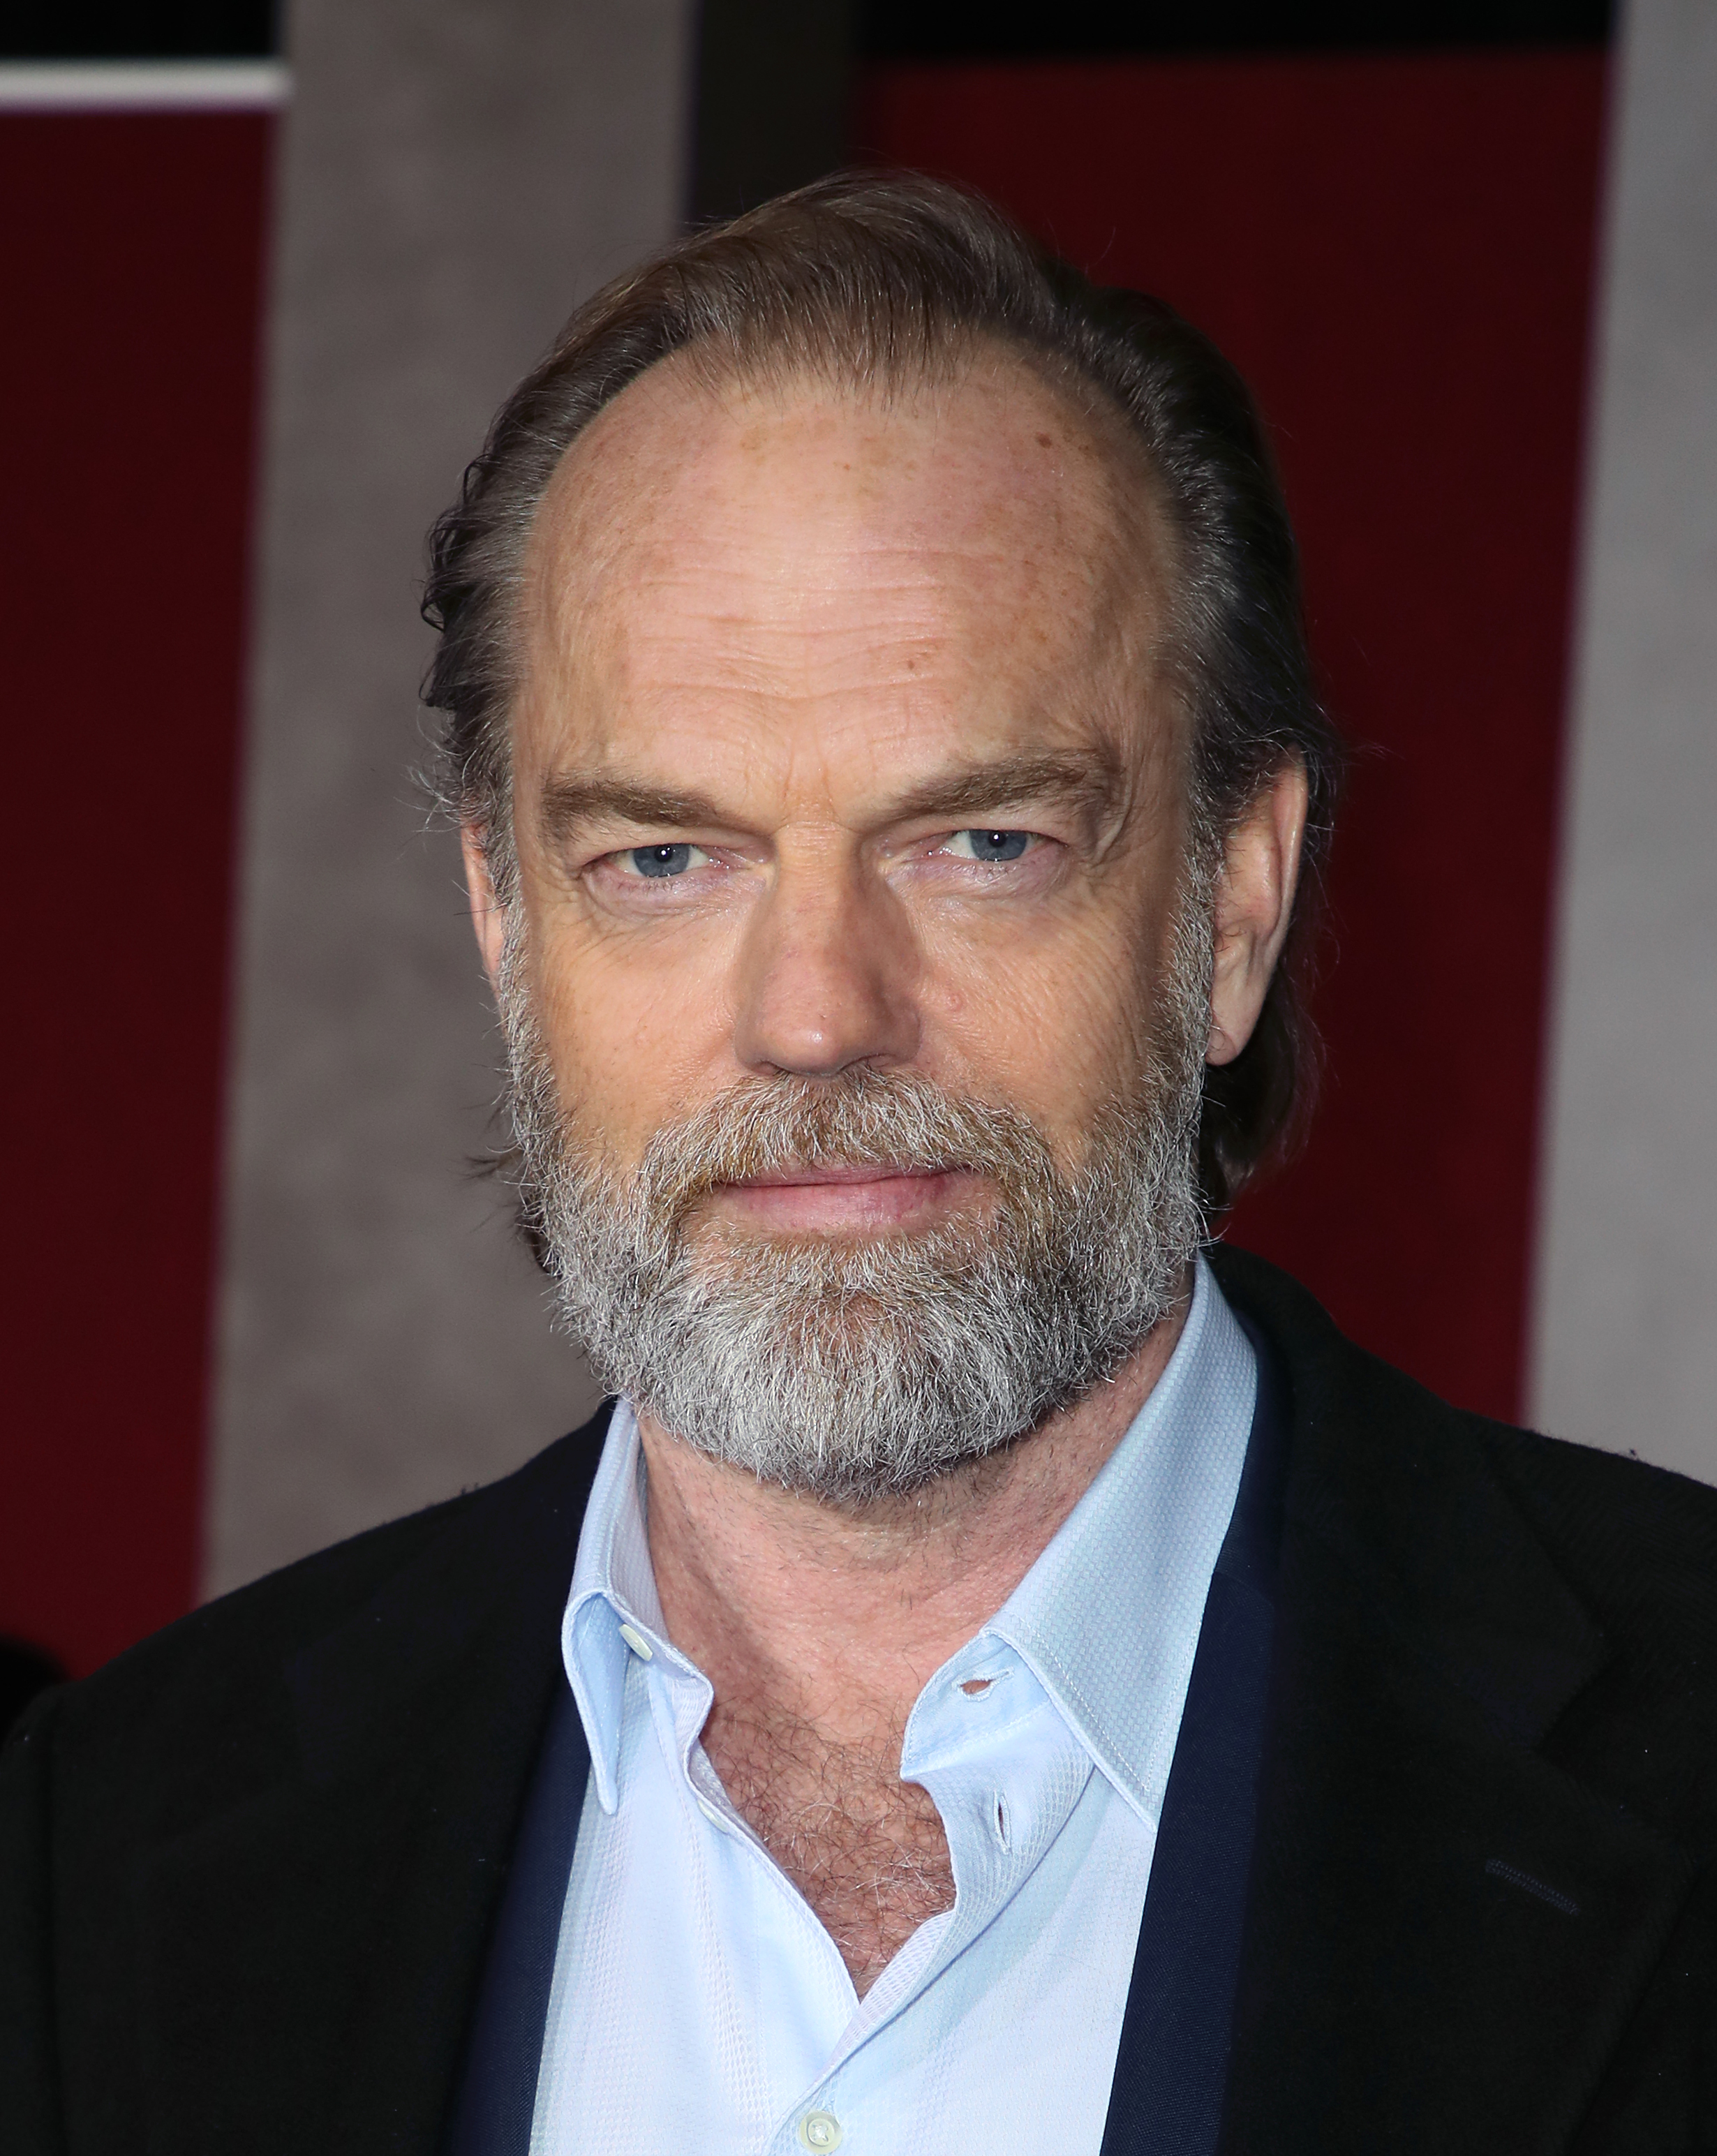 """Hugo Weaving attends the premiere of Universal Pictures' """"Mortal Engines"""" at the Regency Village Theatre on December 05, 2018 in Westwood, California. (Photo by David Livingston/Getty Images)"""